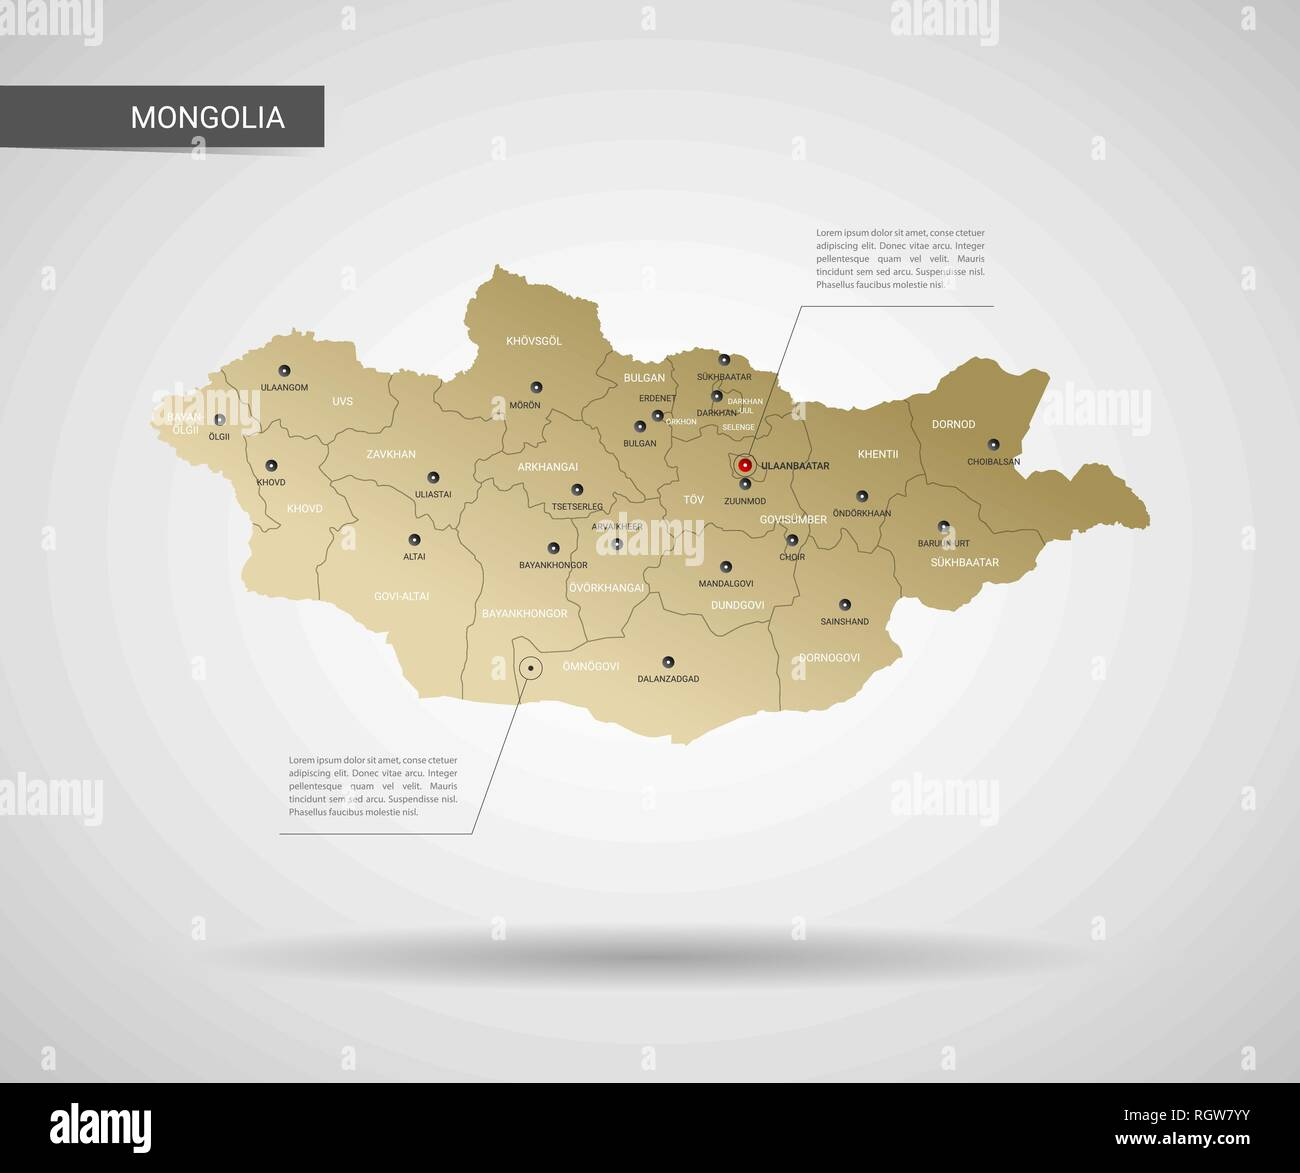 Stylized vector Mongolia map.  Infographic 3d gold map illustration with cities, borders, capital, administrative divisions and pointer marks, shadow; - Stock Image